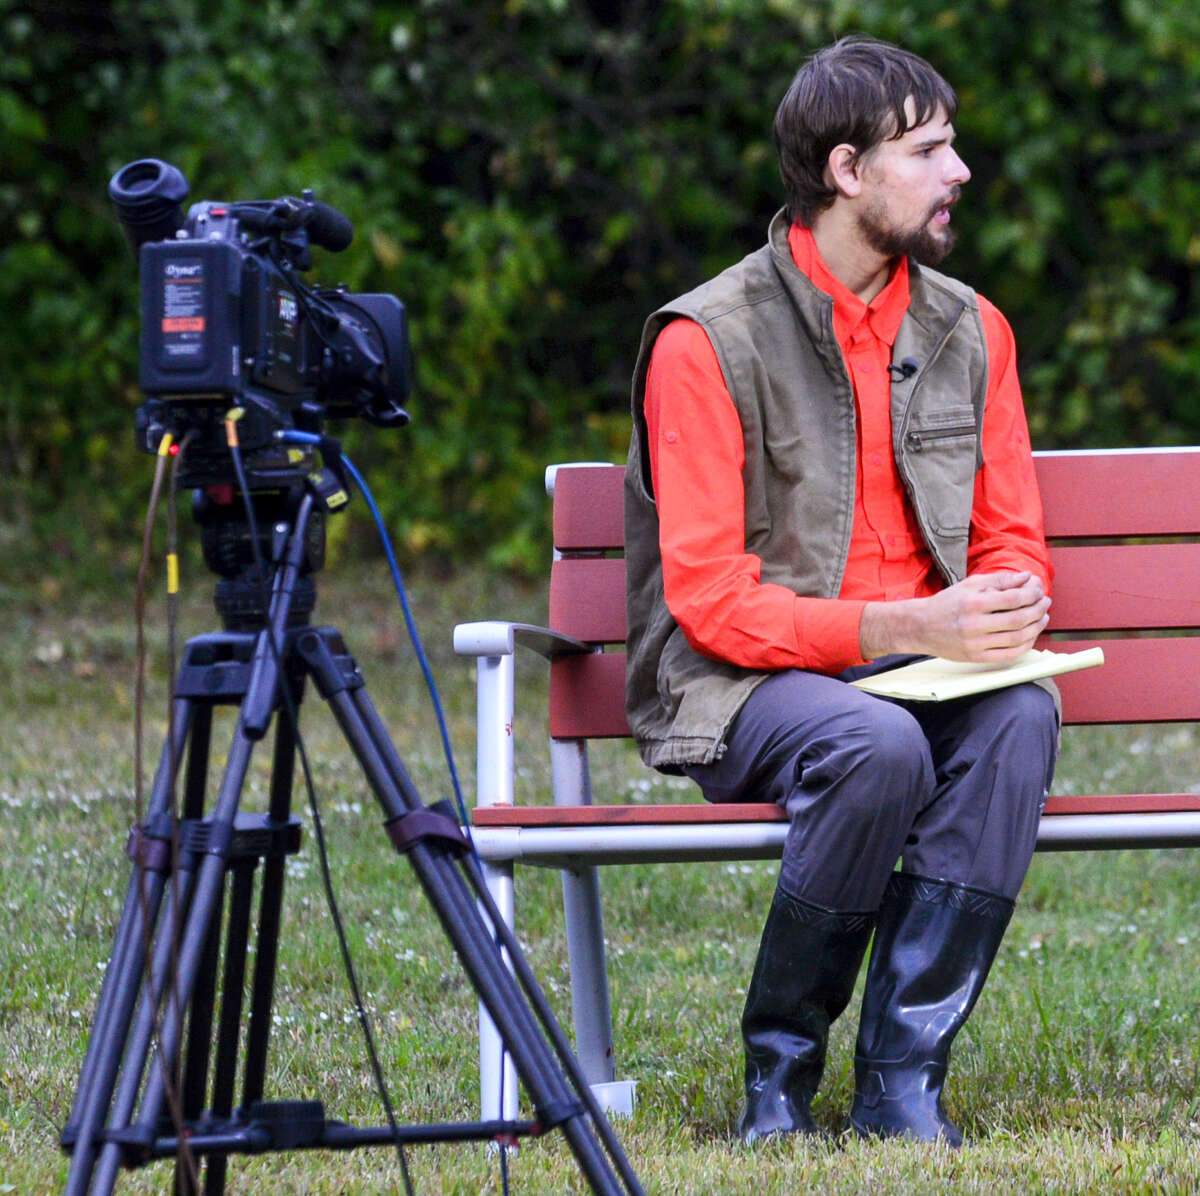 Nathan Carman, rescued from a life raft after a fishing trip, talks to an ABC news reporter in Brattleboro, Vermont, Wednesday. Carman, a 22-year-old former Middletown man rescued from a life raft after a fishing trip that left his Linda Carman, 54, of Middletown, missing and presumed dead. He had been a suspect in the still-unsolved 2013 slaying of his rich grandfather, adding to the multitude of questions swirling around him and what happened at sea.